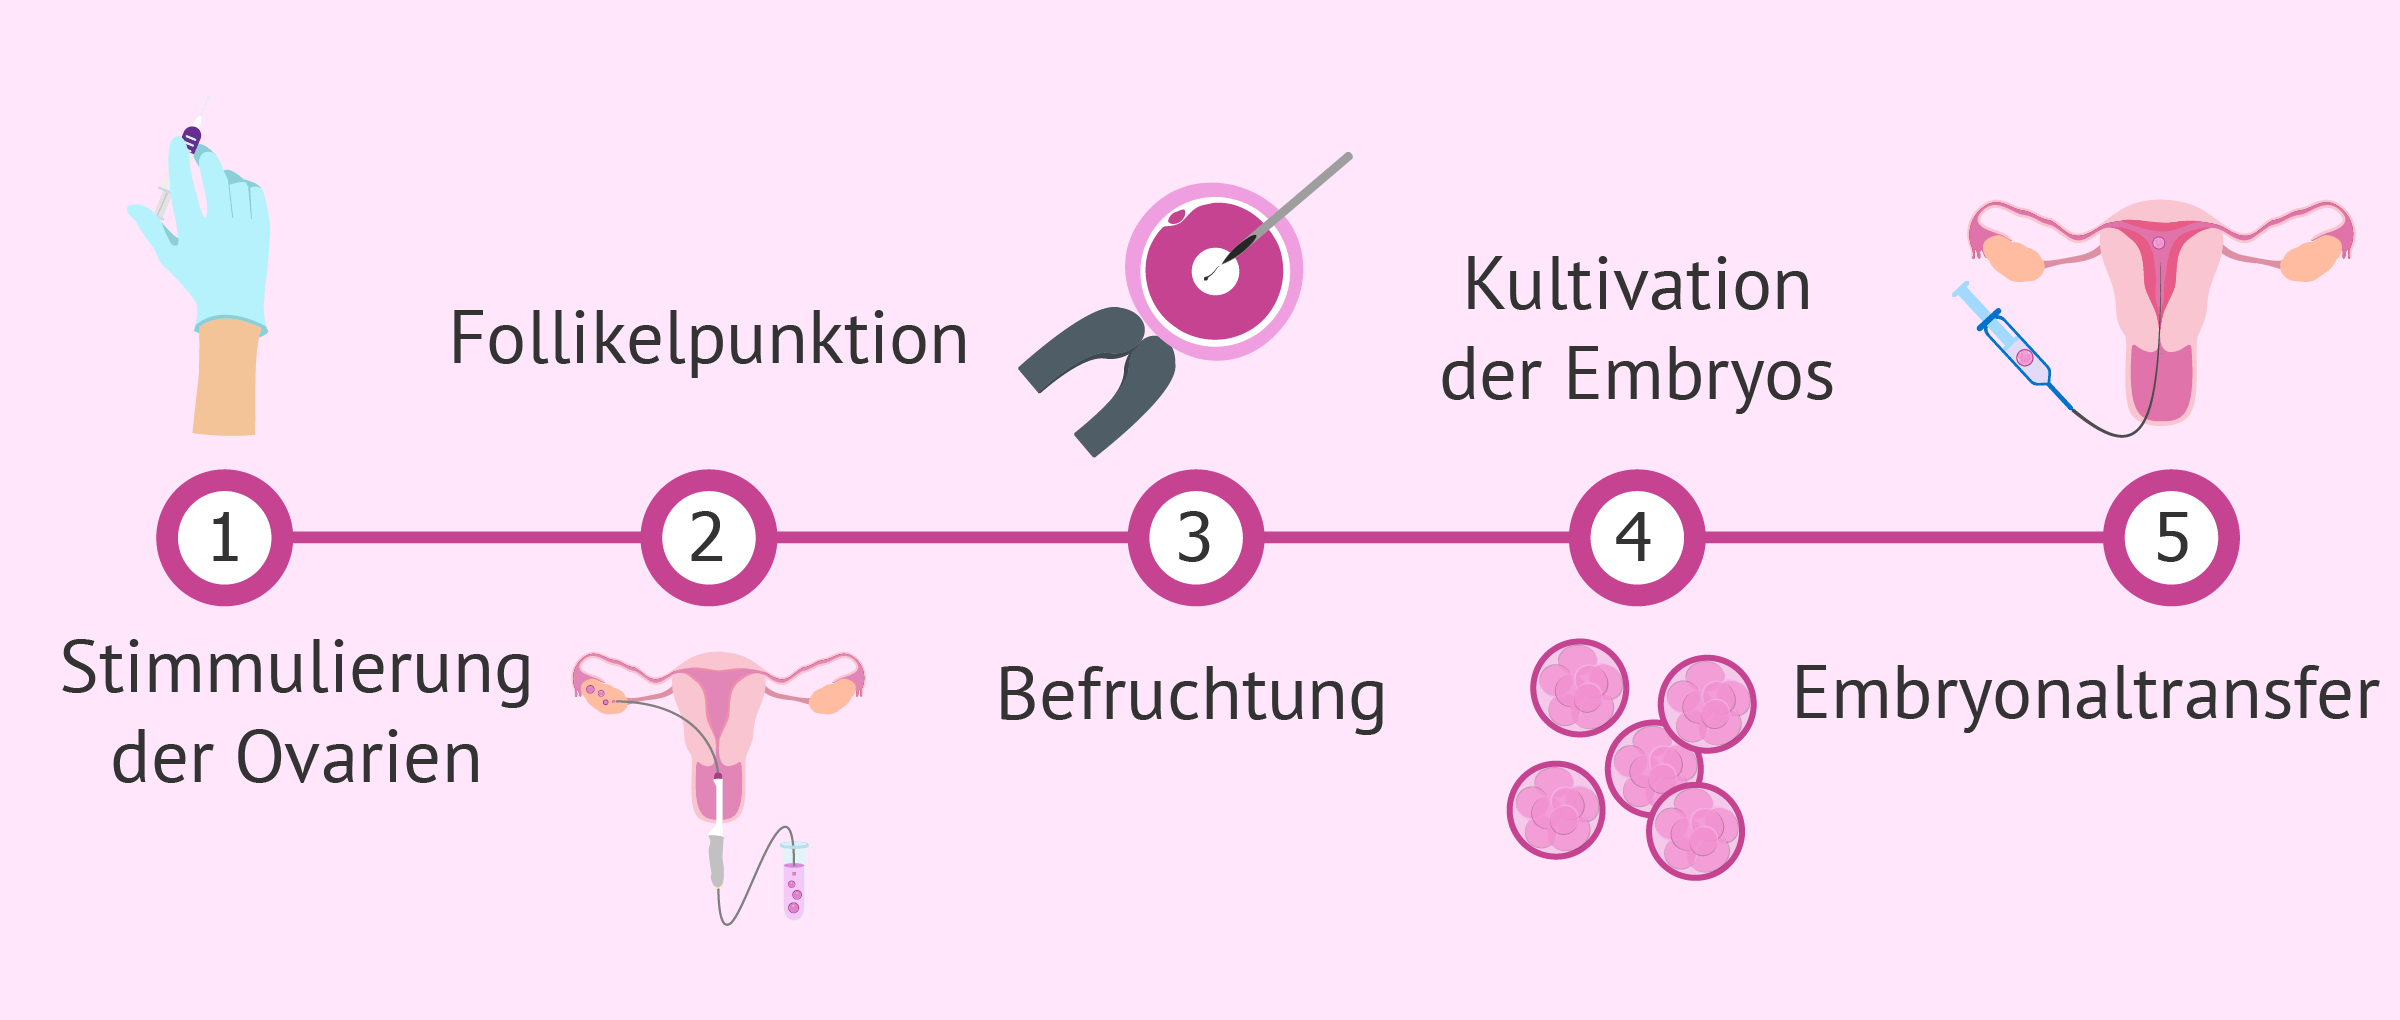 Ablauf in der In-vitro-Fertilisation